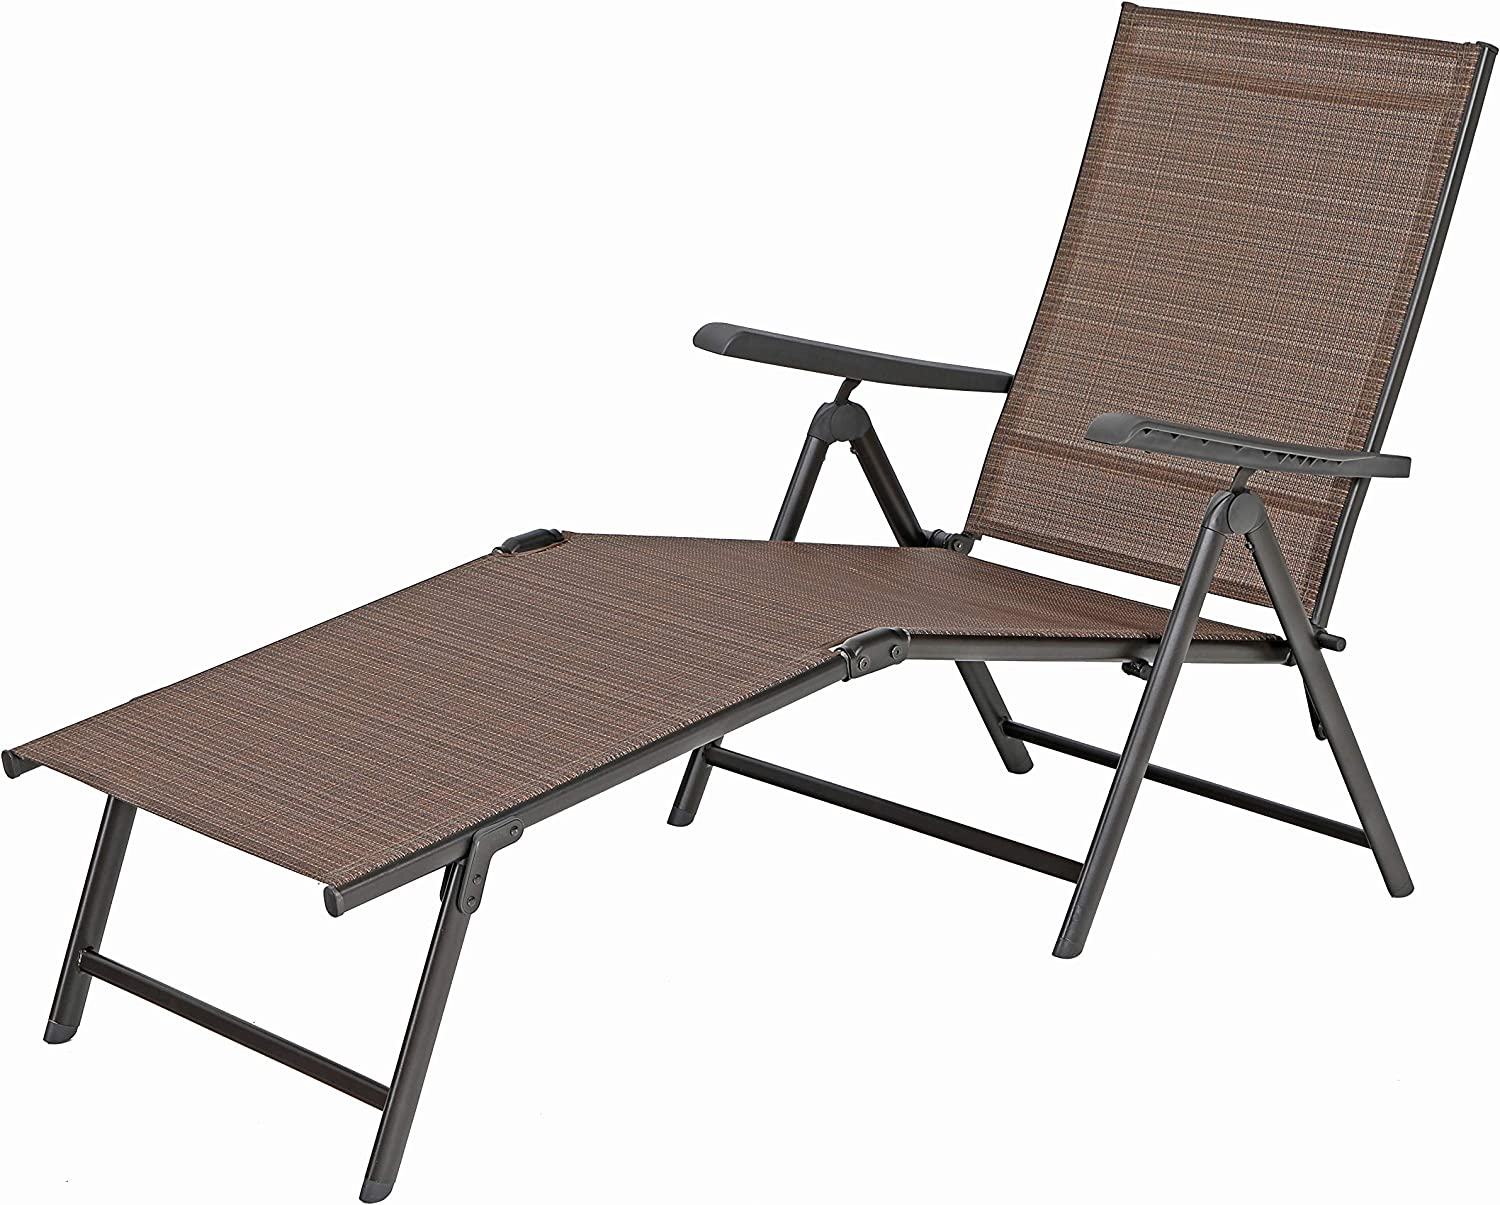 PHI VILLA 5 Stages Adjustable Patio Folding Lounge Chair Metal Outdoor Recliner Chaise for Beach Yard Pool – – Brown